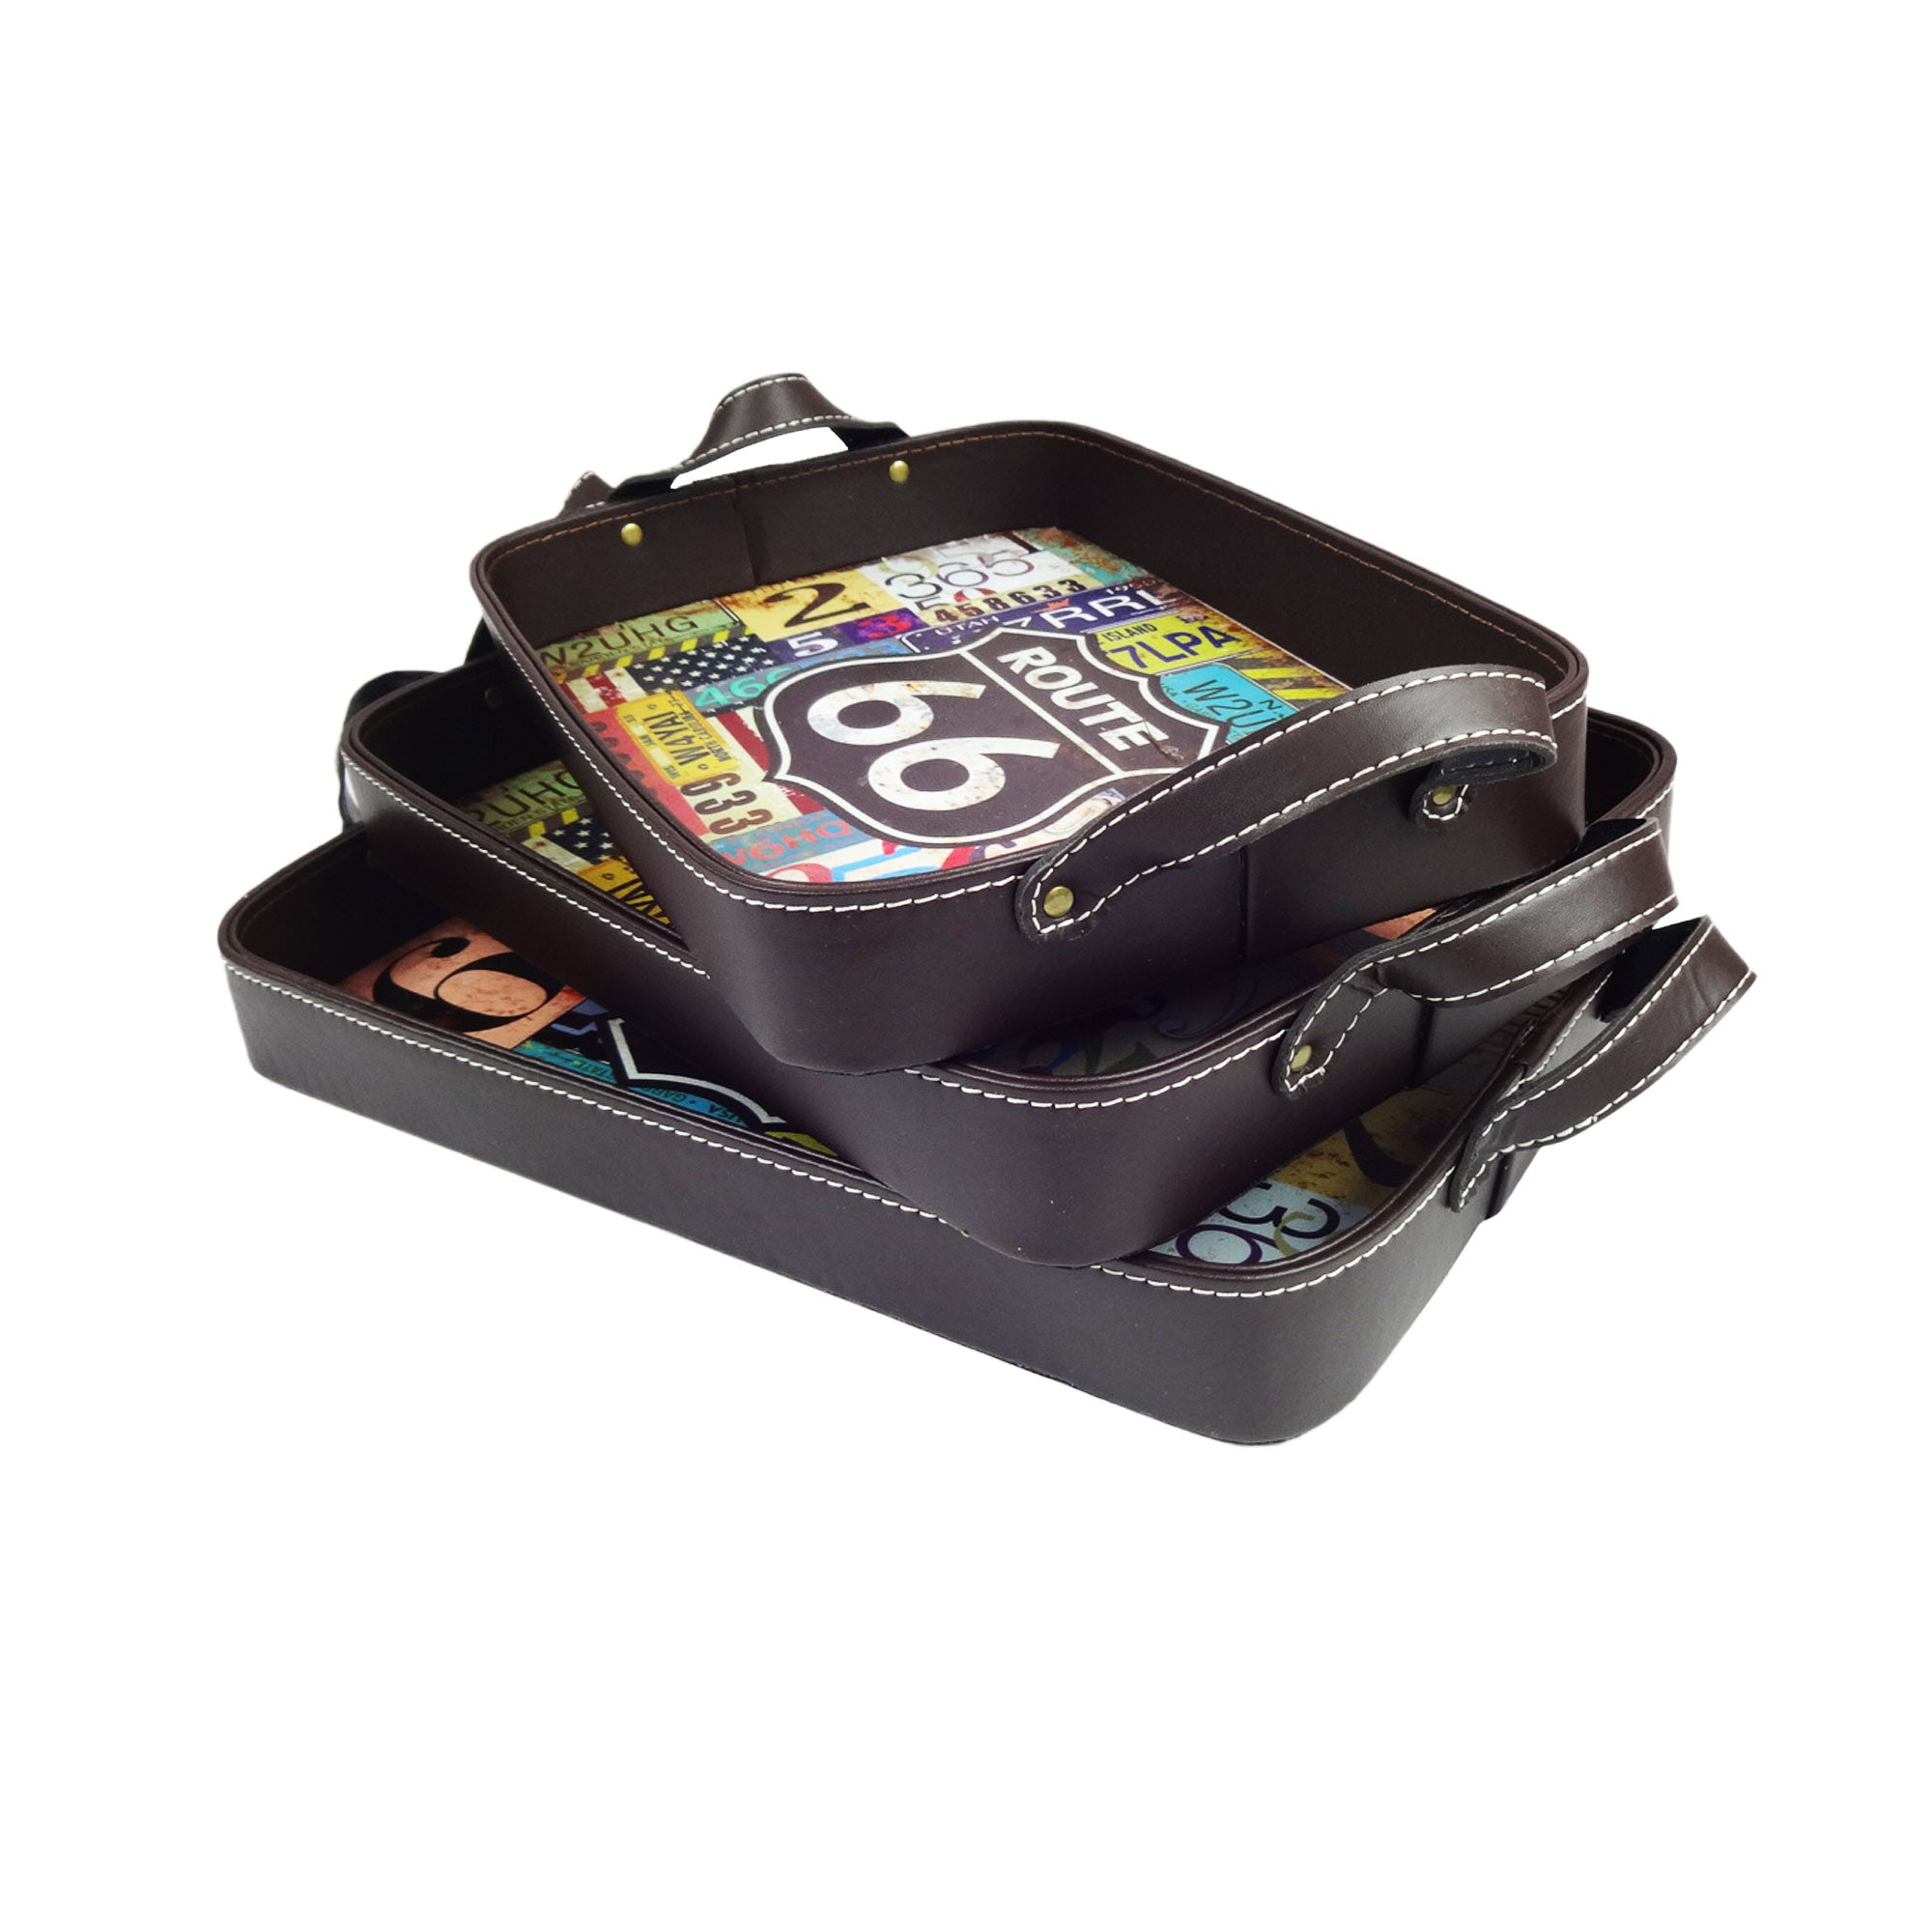 Route 66 Tray - Set of 3